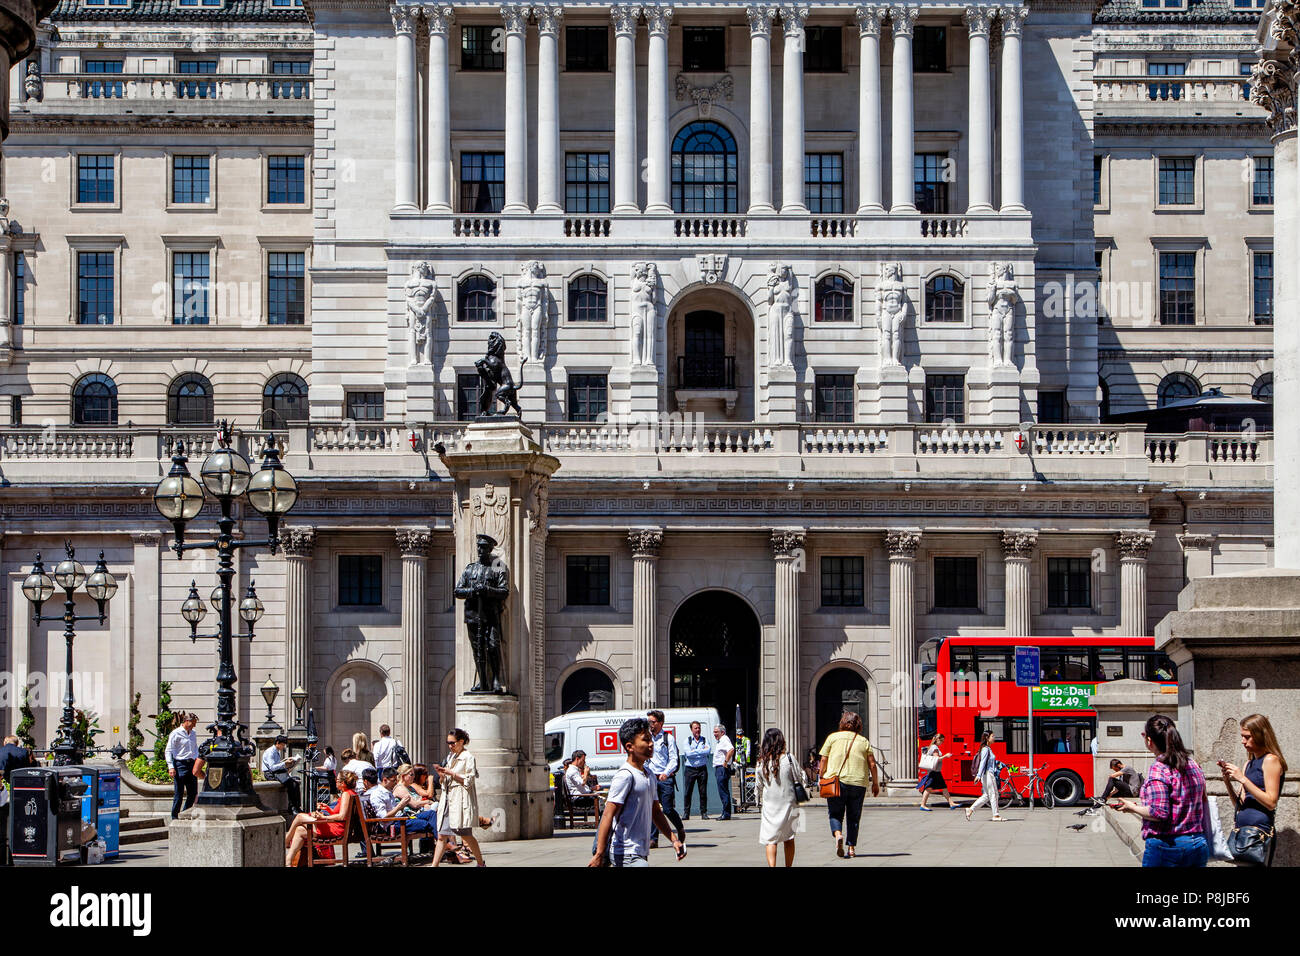 The Bank Of England, Threadneedle Street, The City of London, London, England - Stock Image